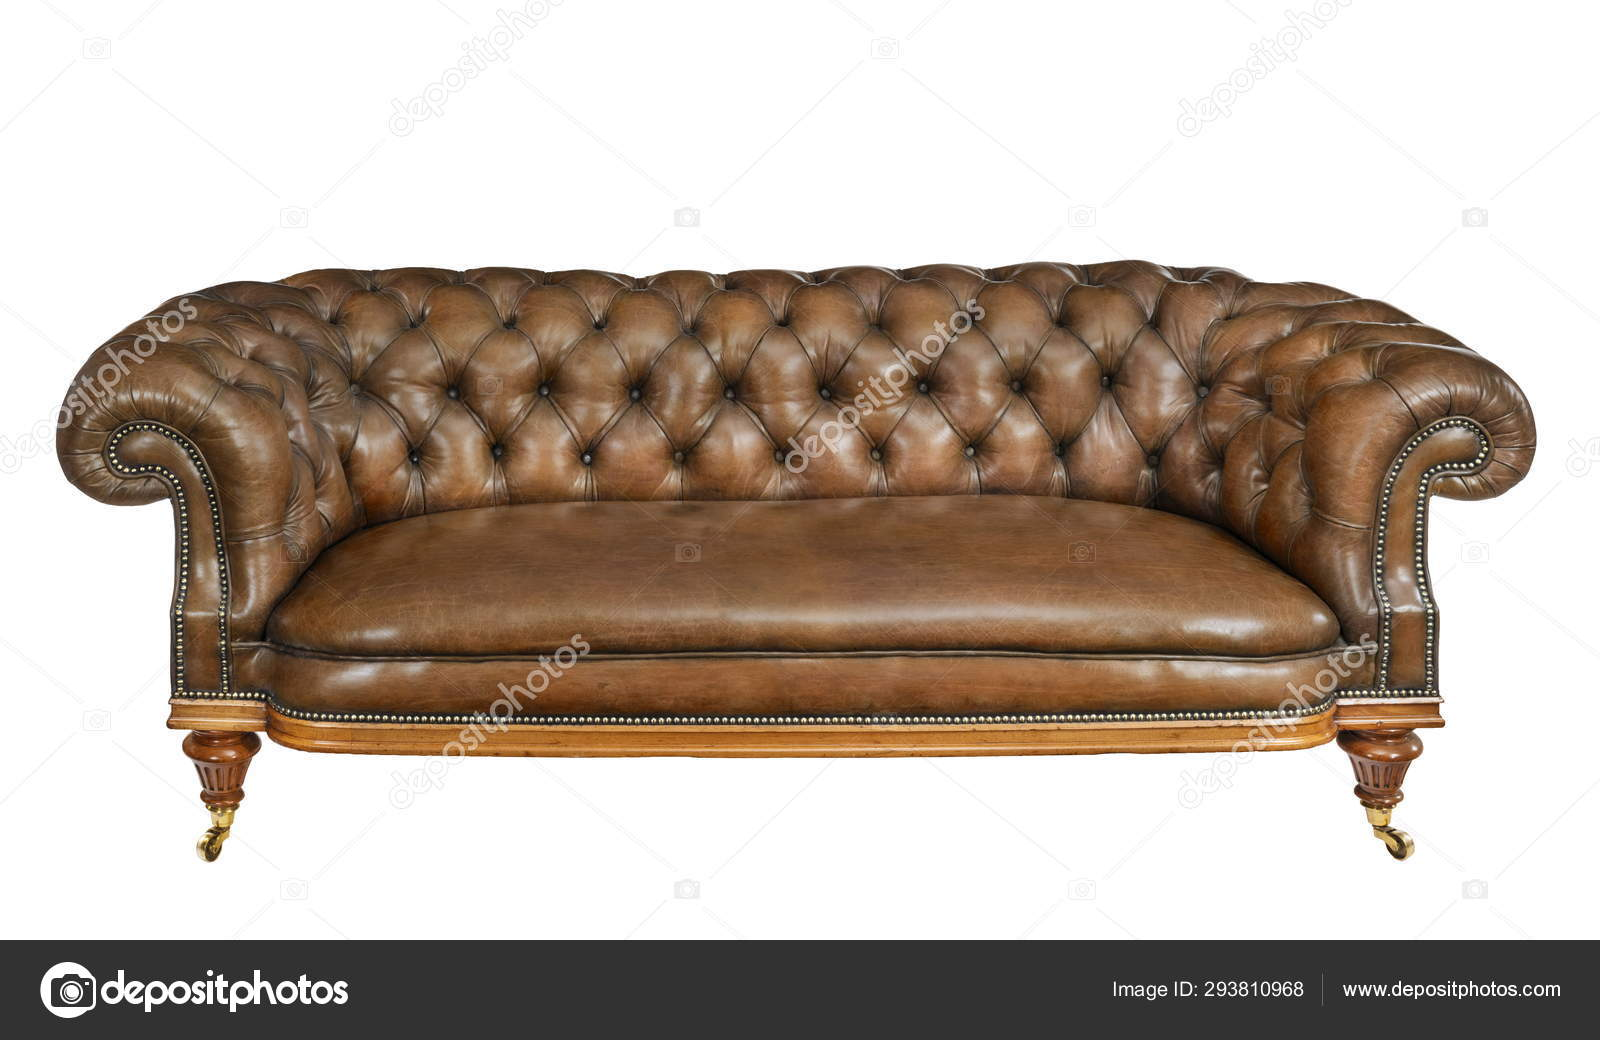 Sensational Classic Brown Leather Sofa Isolated On White Stock Photo Squirreltailoven Fun Painted Chair Ideas Images Squirreltailovenorg